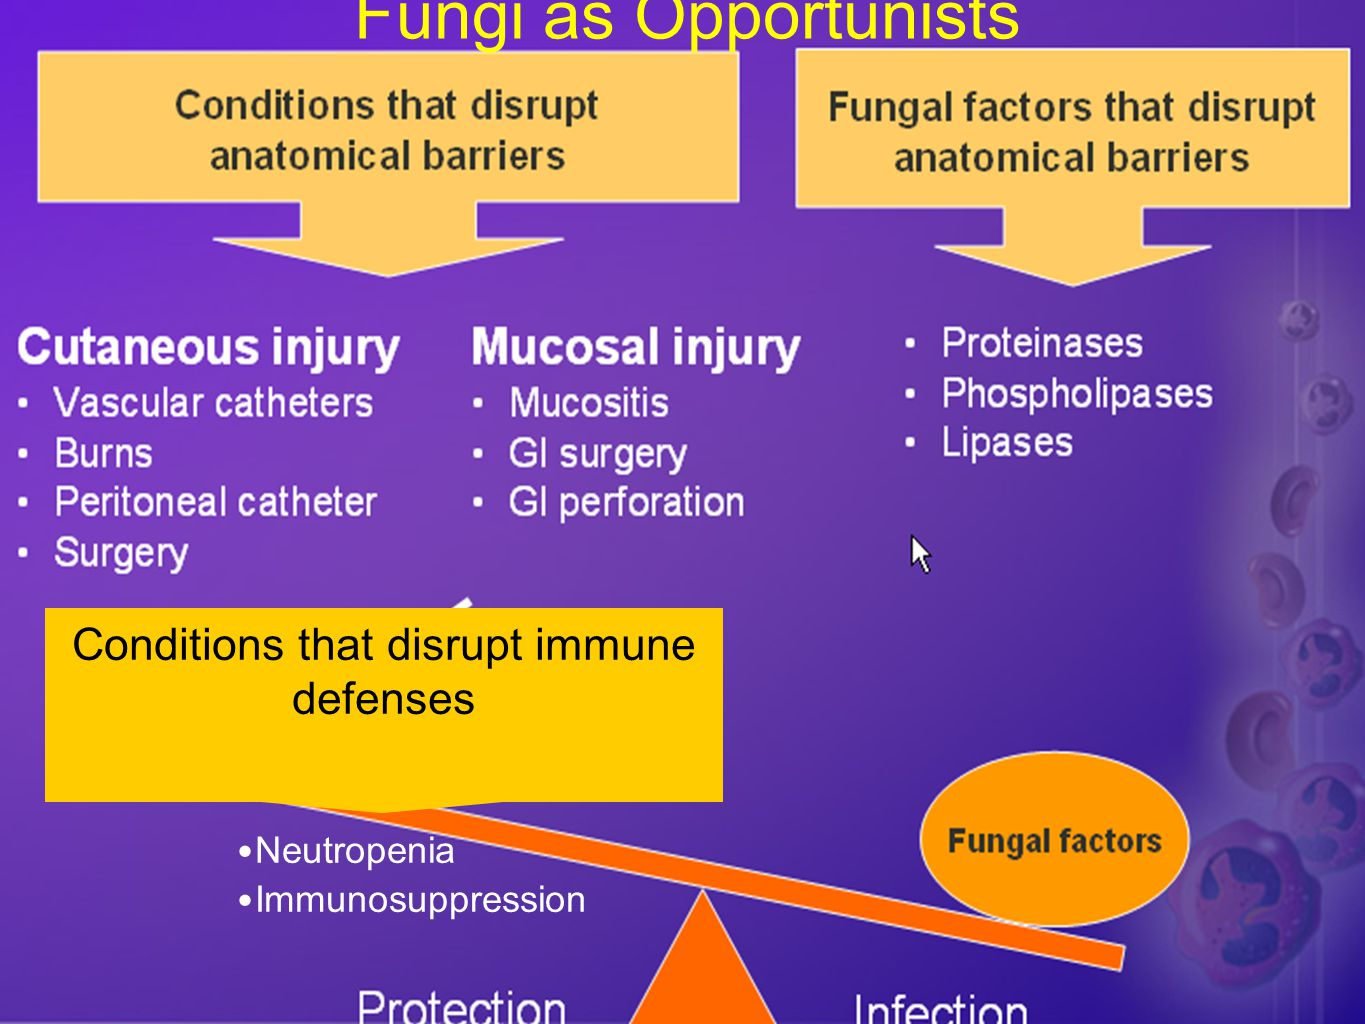 Conditions that disrupt immune defenses